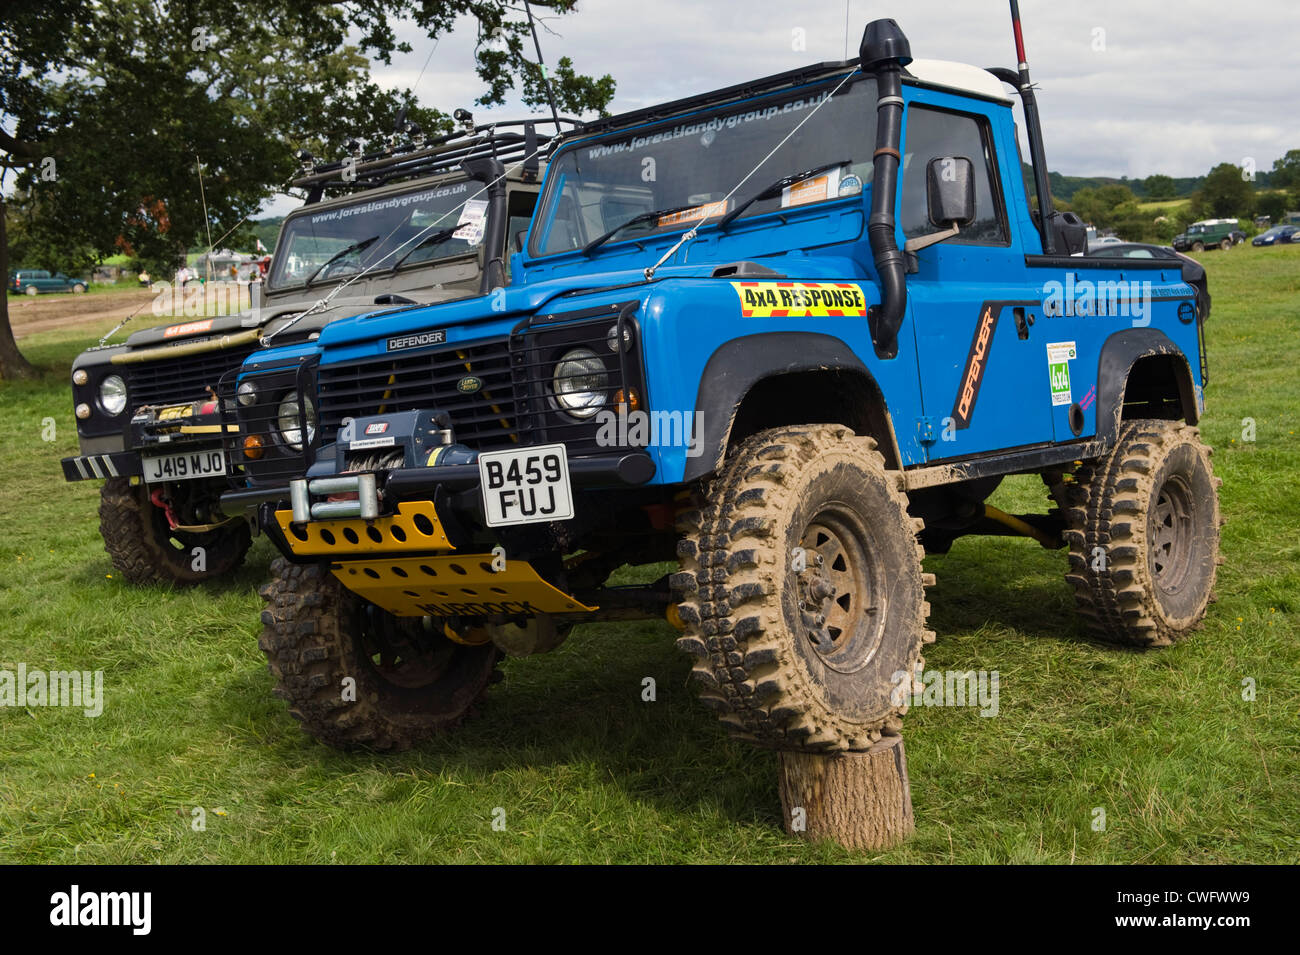 highly modified 4x4 land rover defender 90 for extreme offroading at stock photo 50136725 alamy. Black Bedroom Furniture Sets. Home Design Ideas